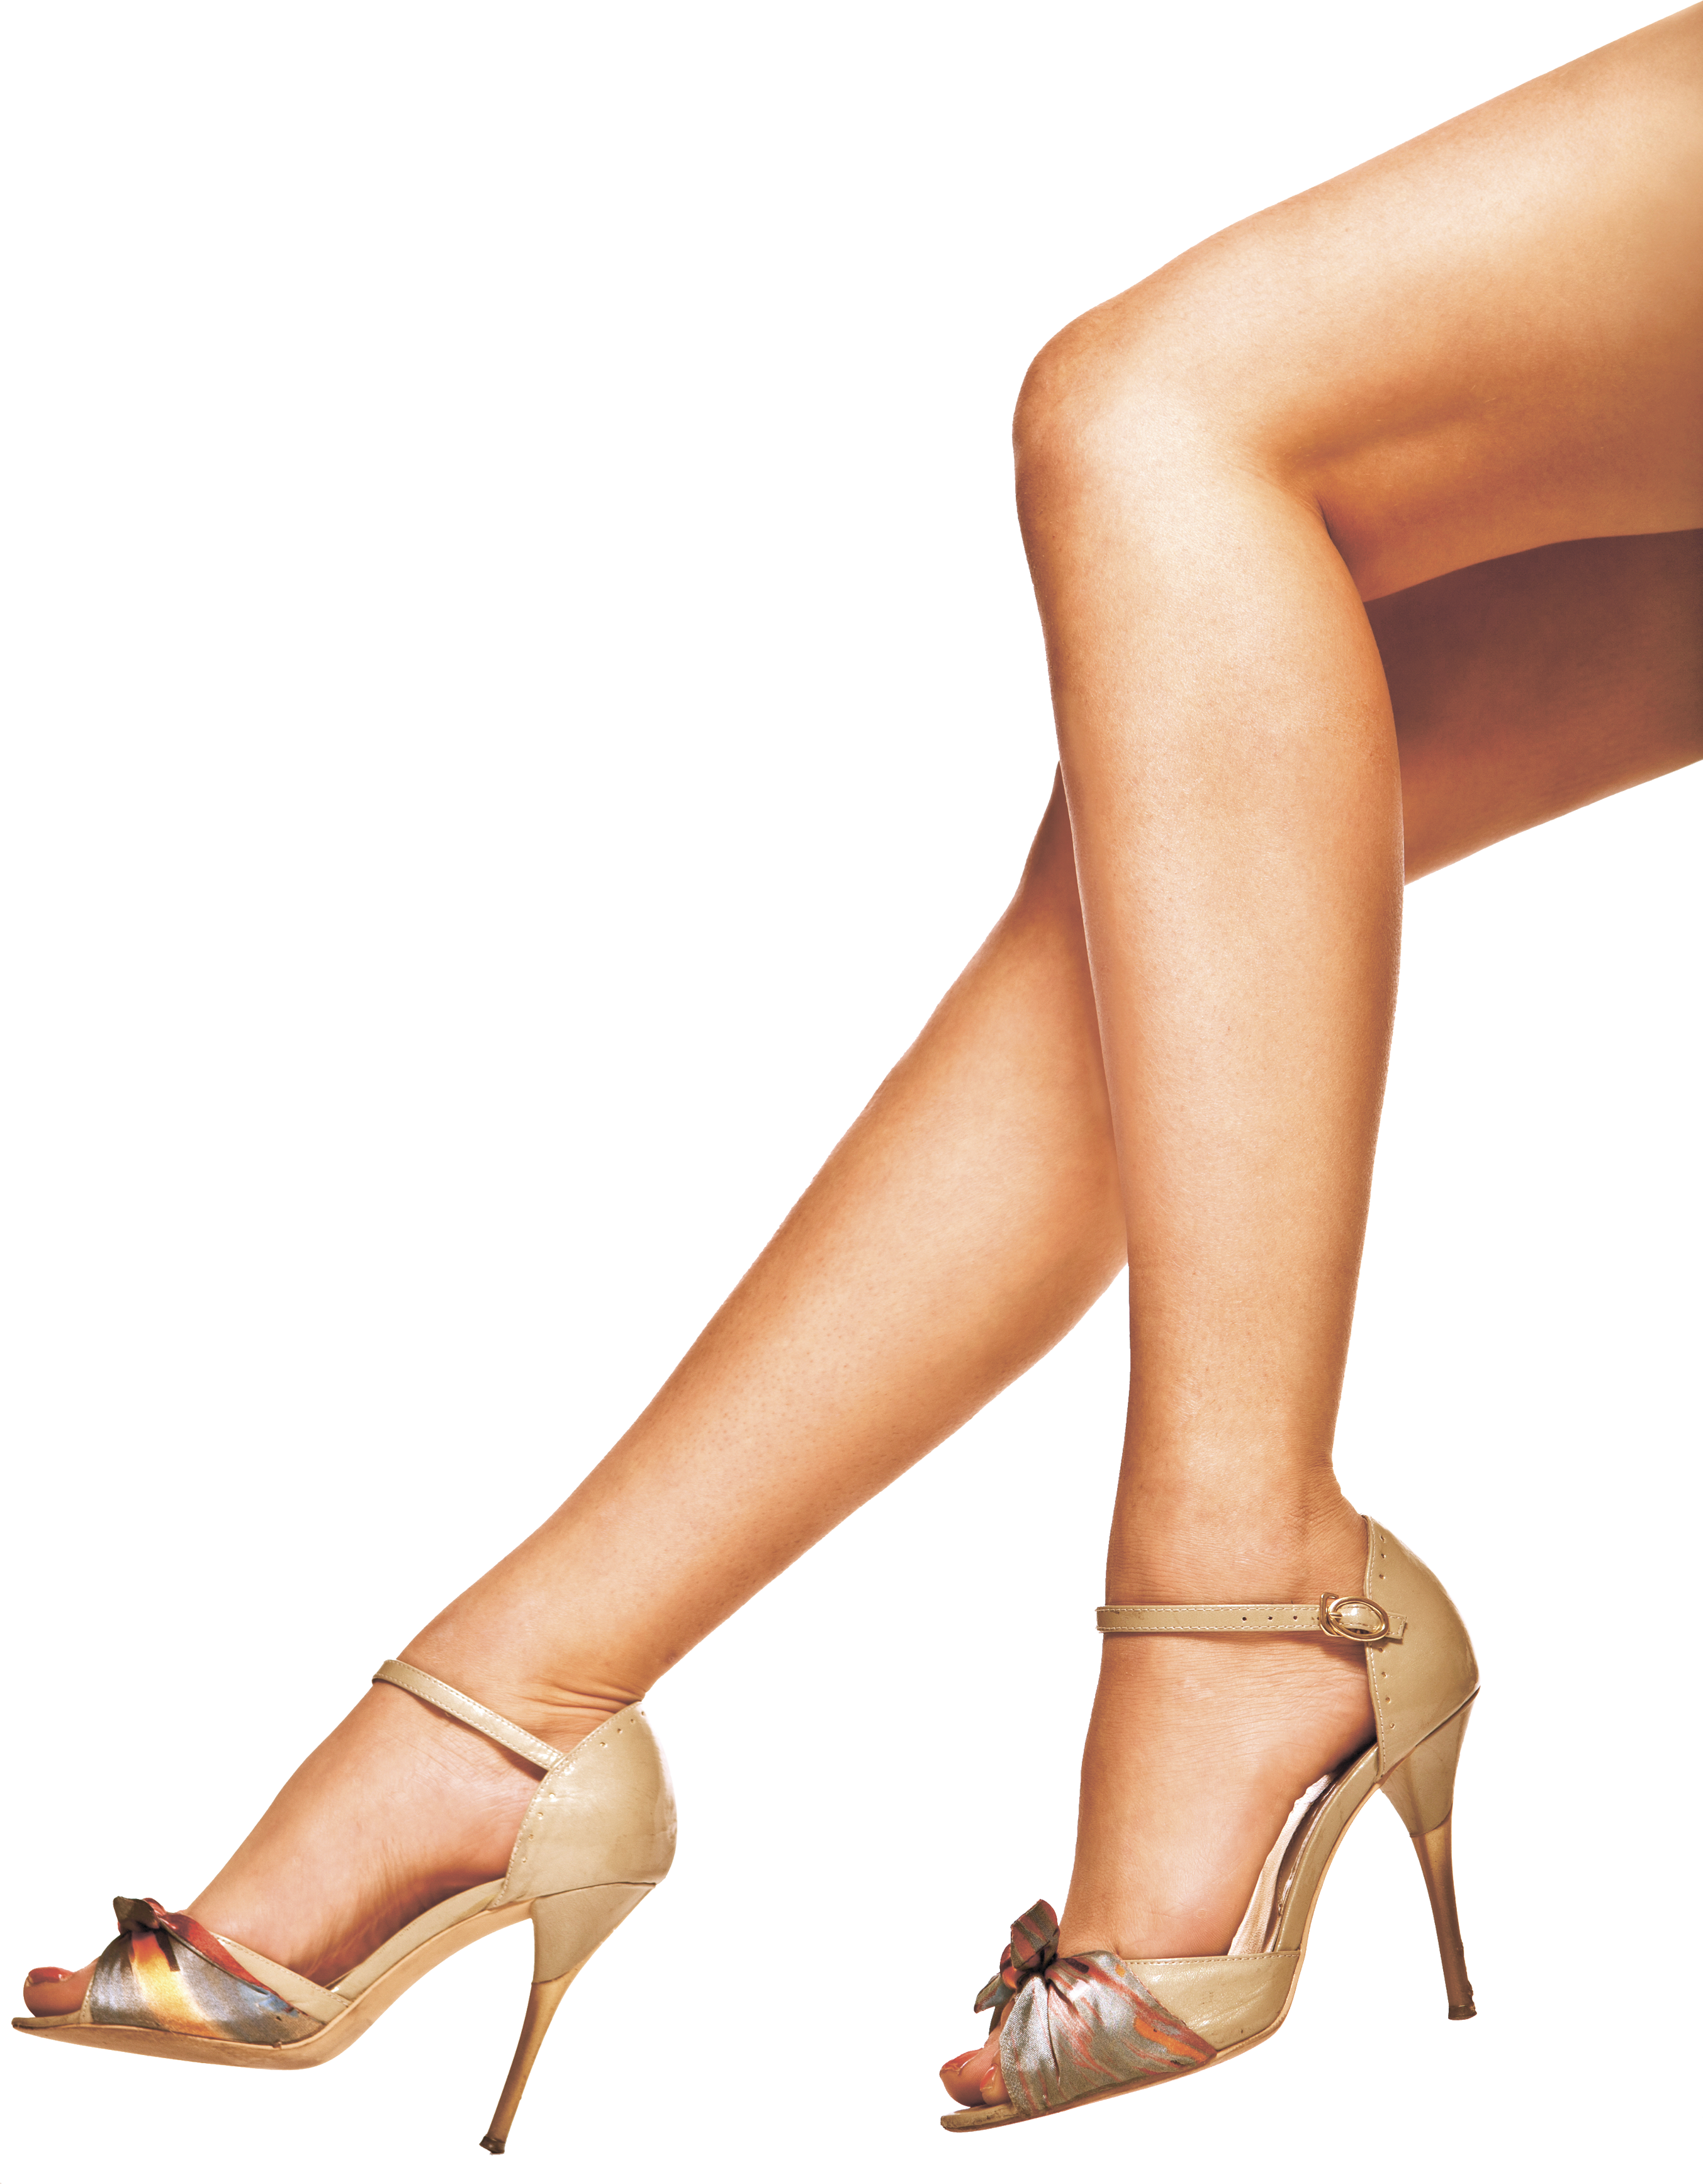 Heels clipart human Images image free PNG Women